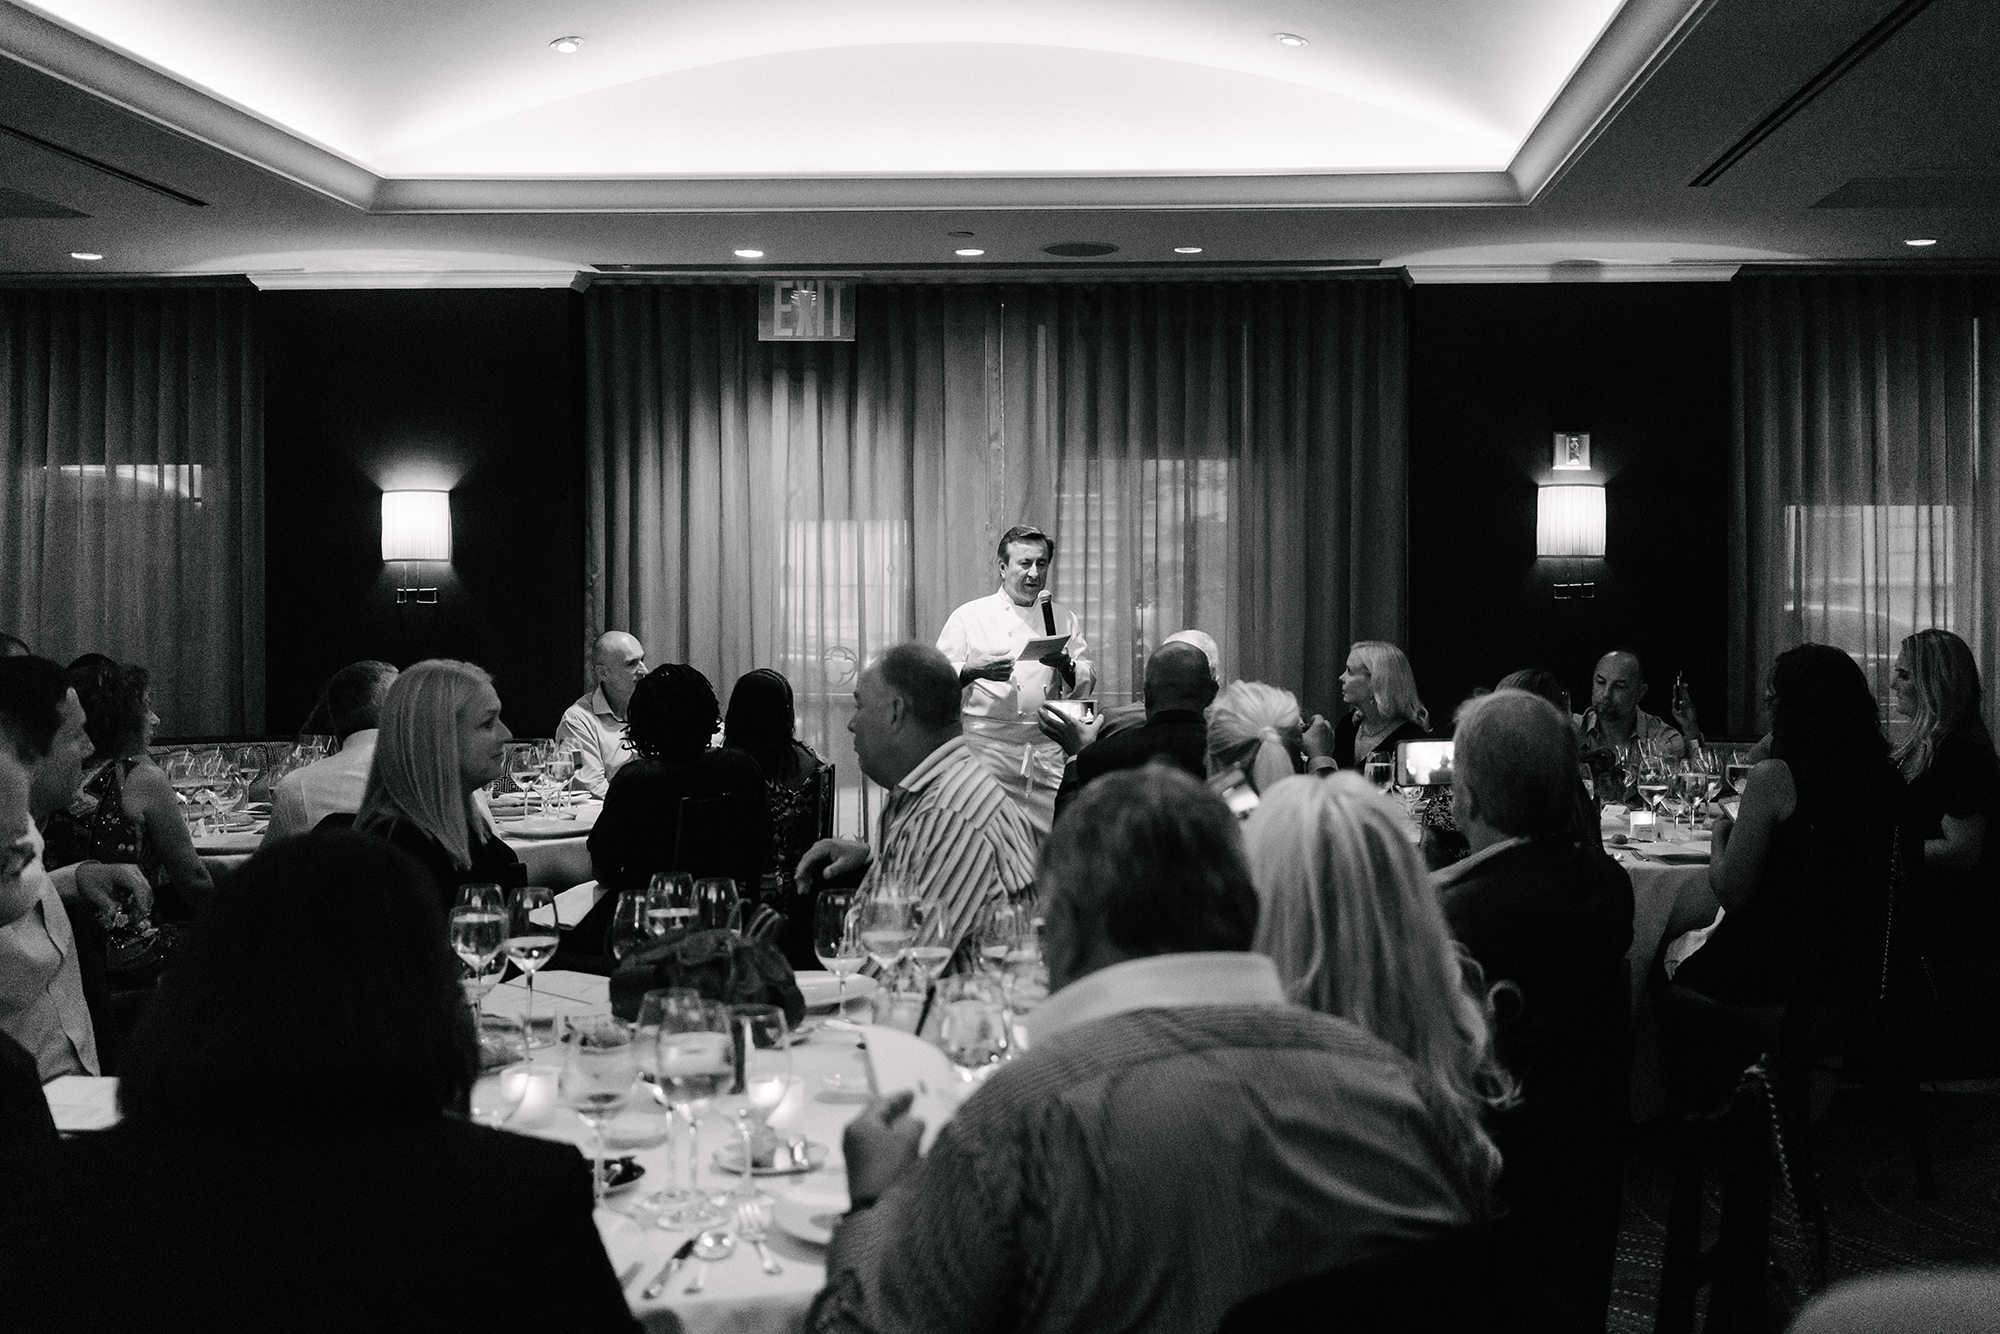 Dinner with Chef Daniel Boulud at  DANIEL  (Special thanks to  Ritz Carlton )